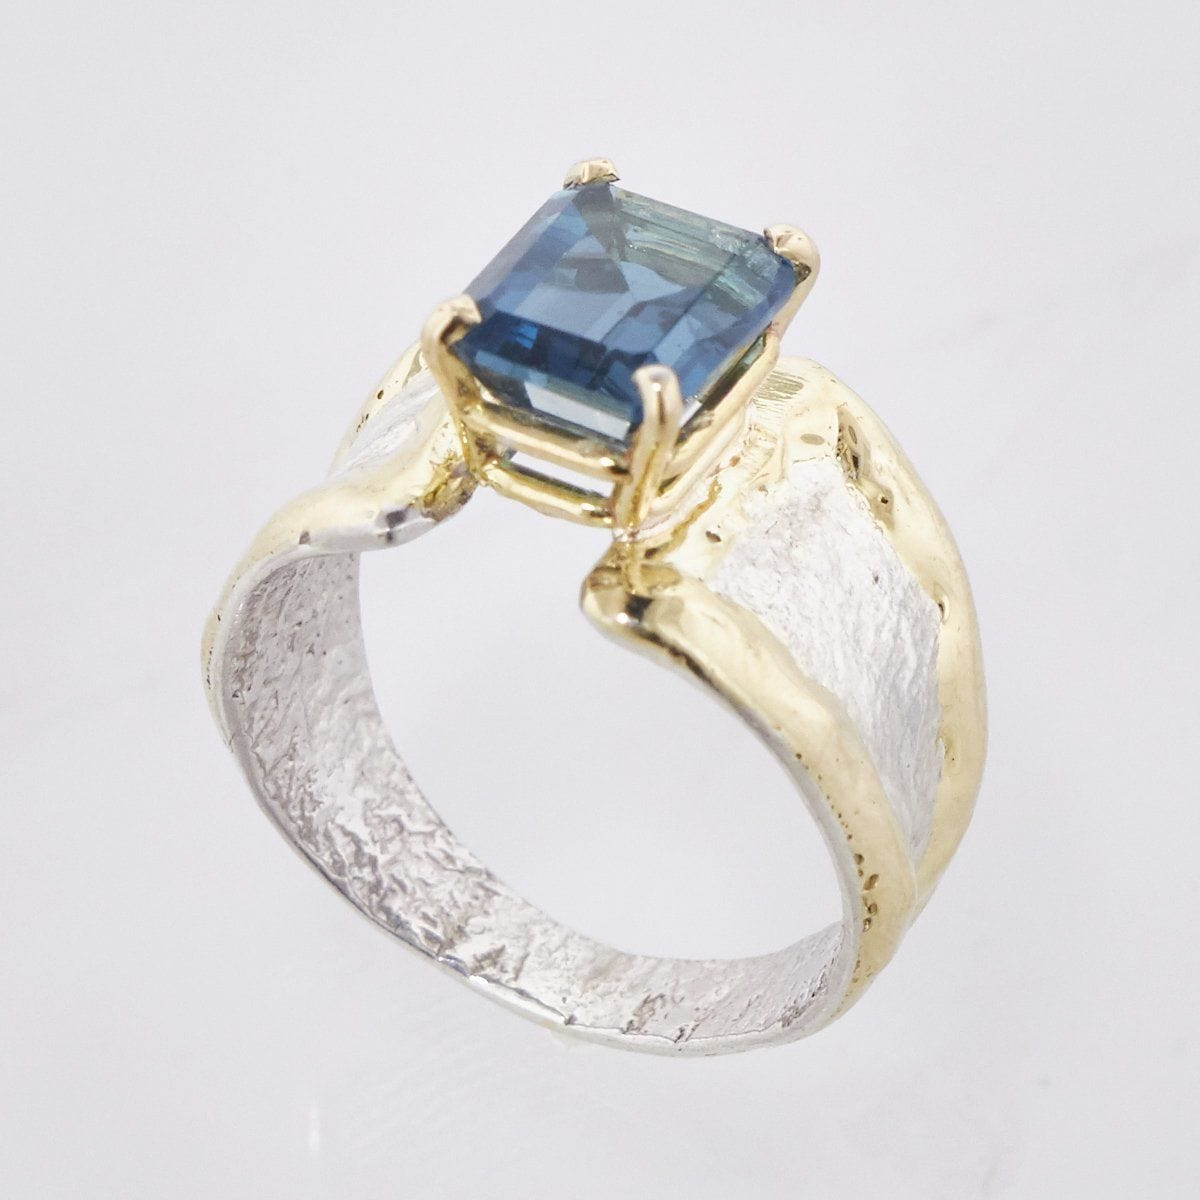 14K Gold & Crystalline Silver London Blue Topaz Ring - 33260-Fusion Designs-Renee Taylor Gallery